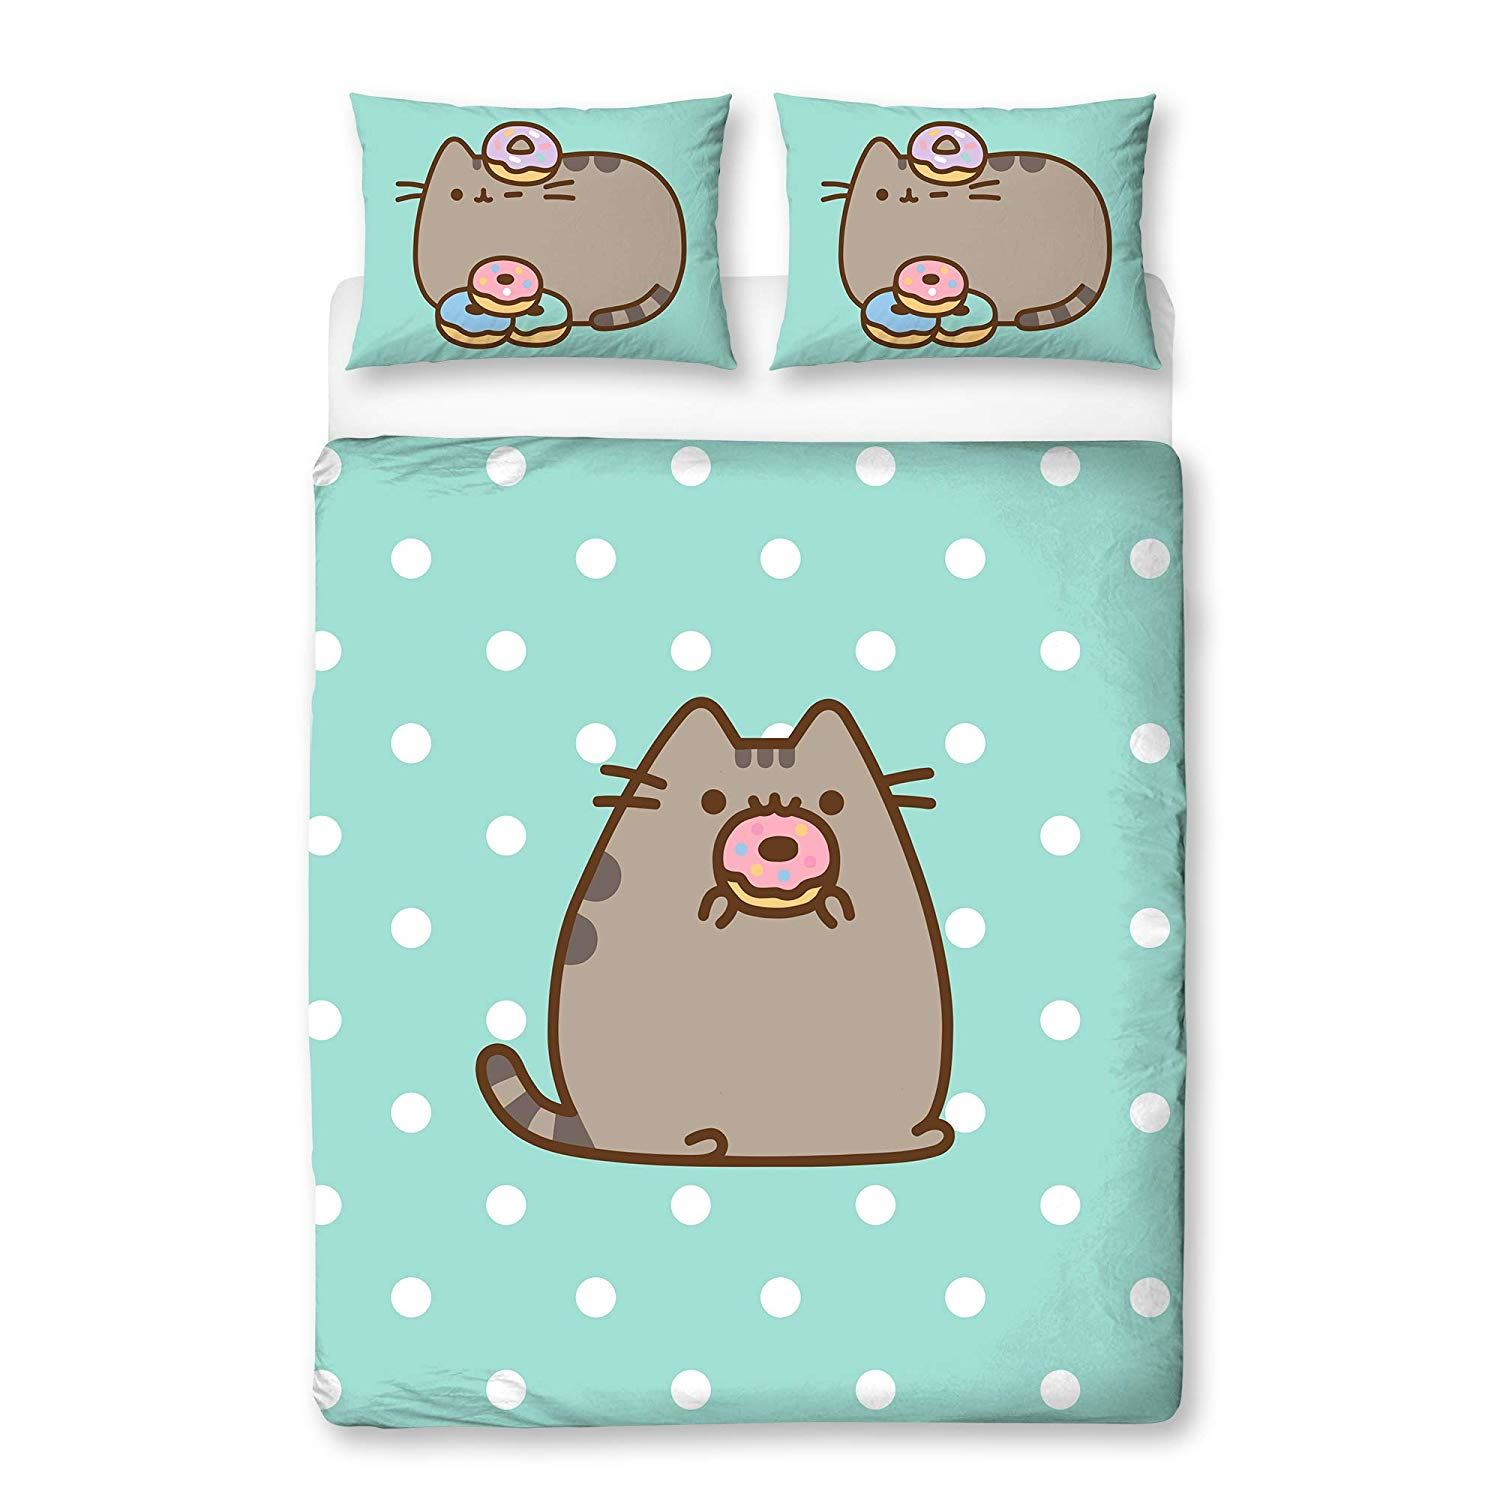 Pusheen-Doughnut-Single-Double-Reversible-Duvet-Cover-Bedding-Set thumbnail 5